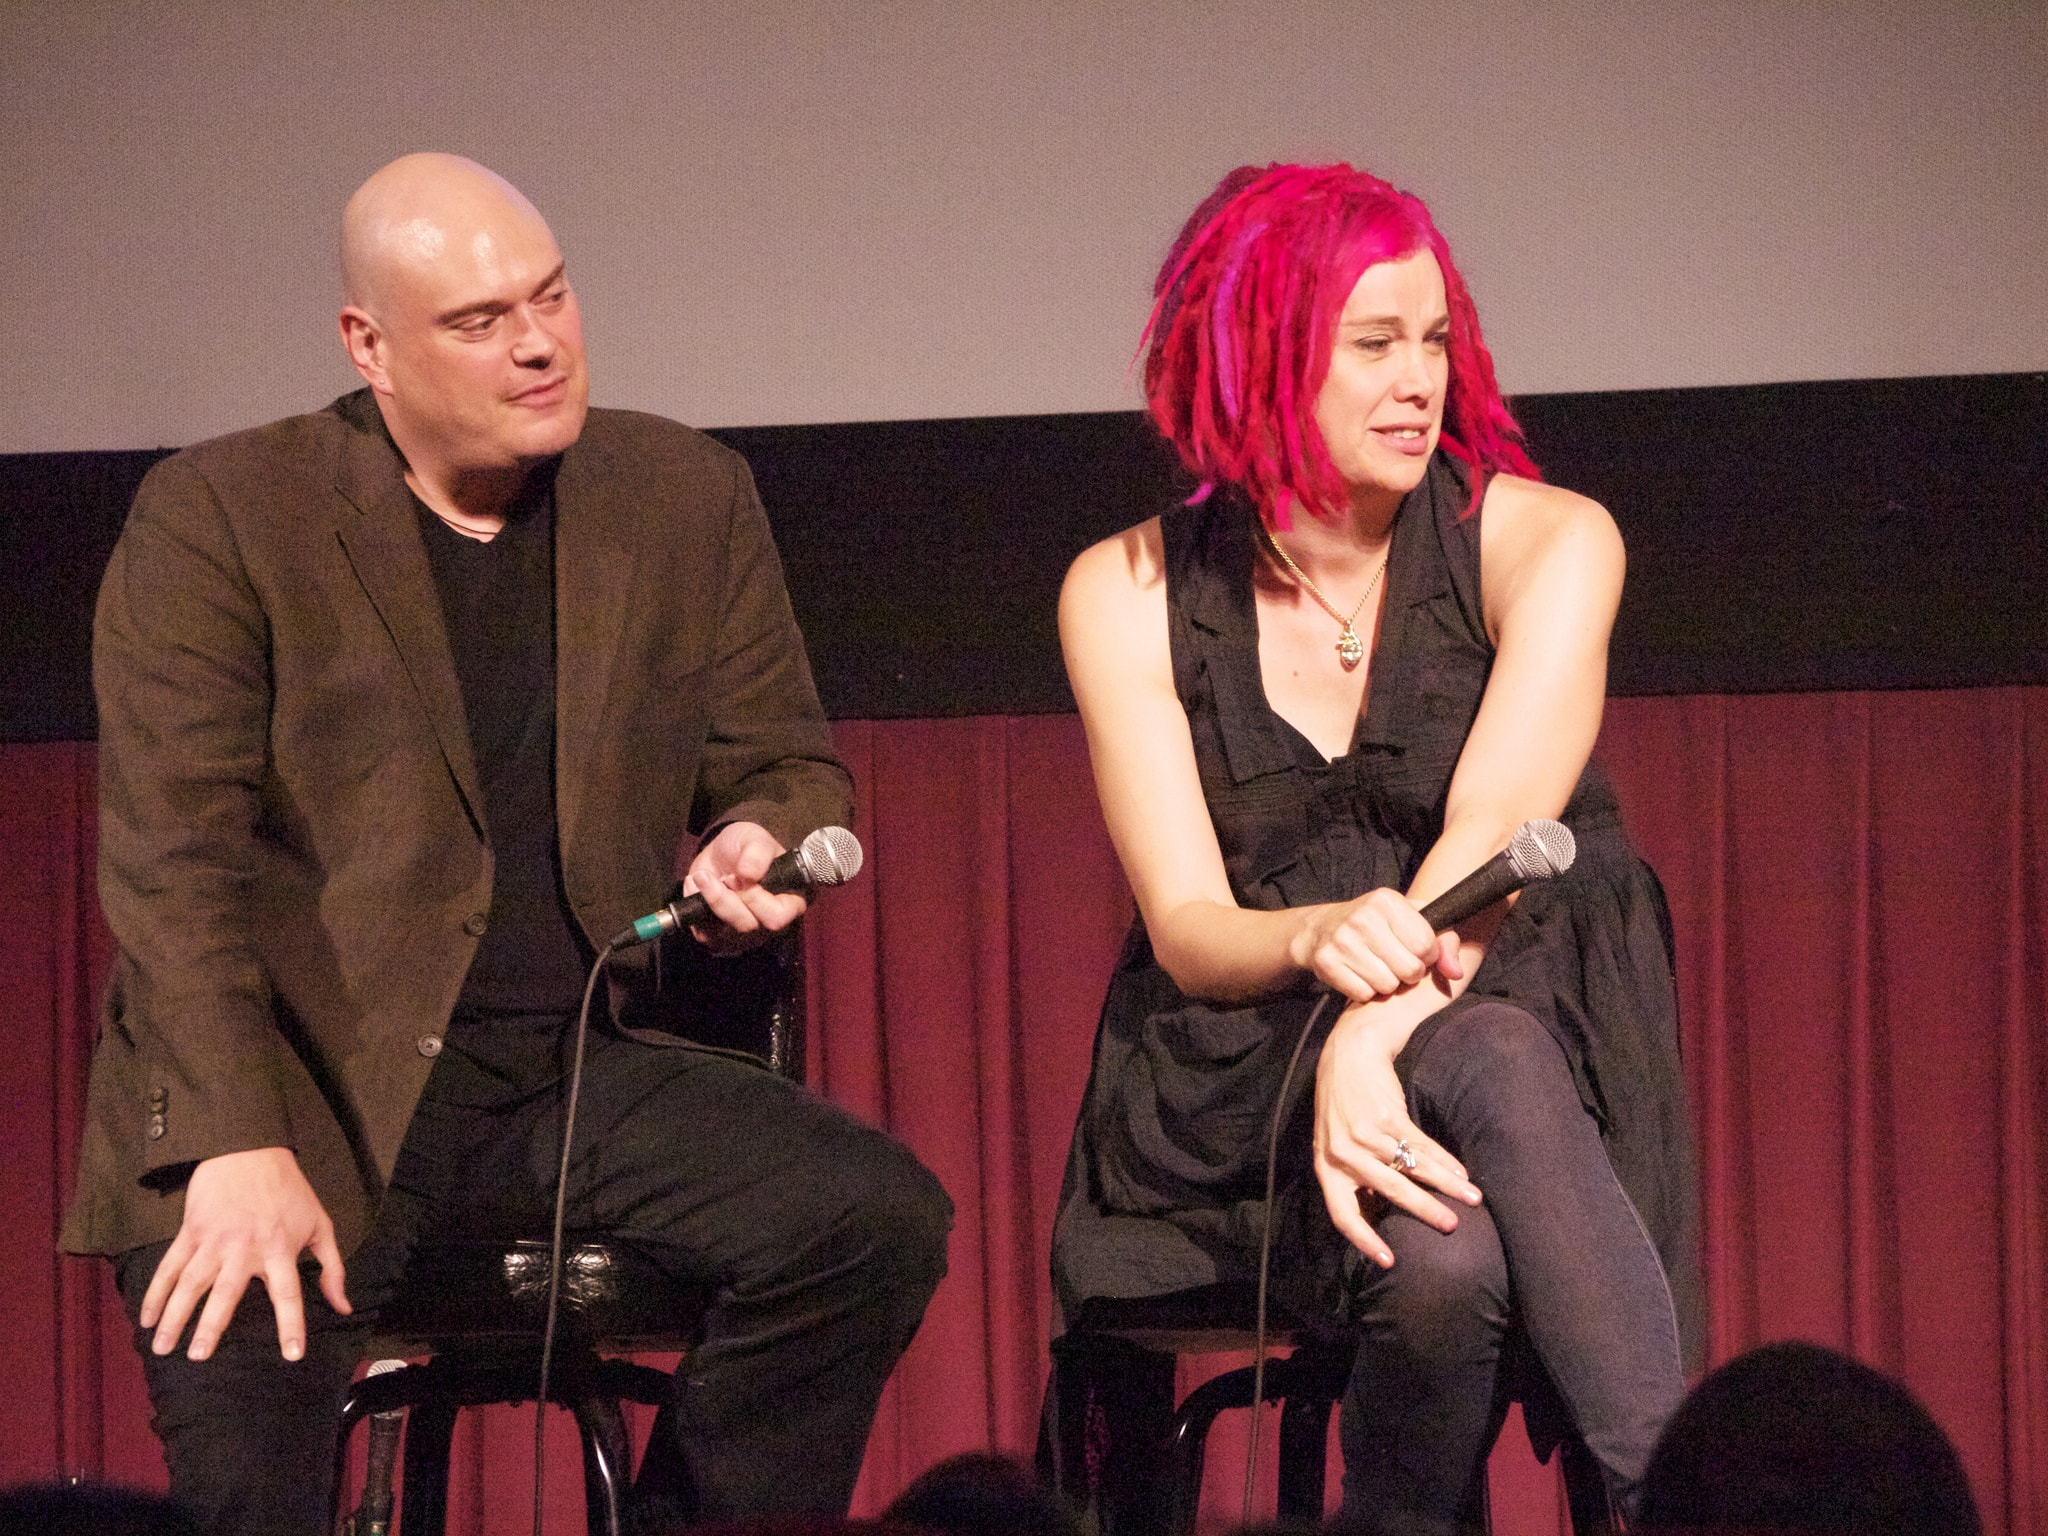 Wachowski brothers in picture matrix to sister with sex change